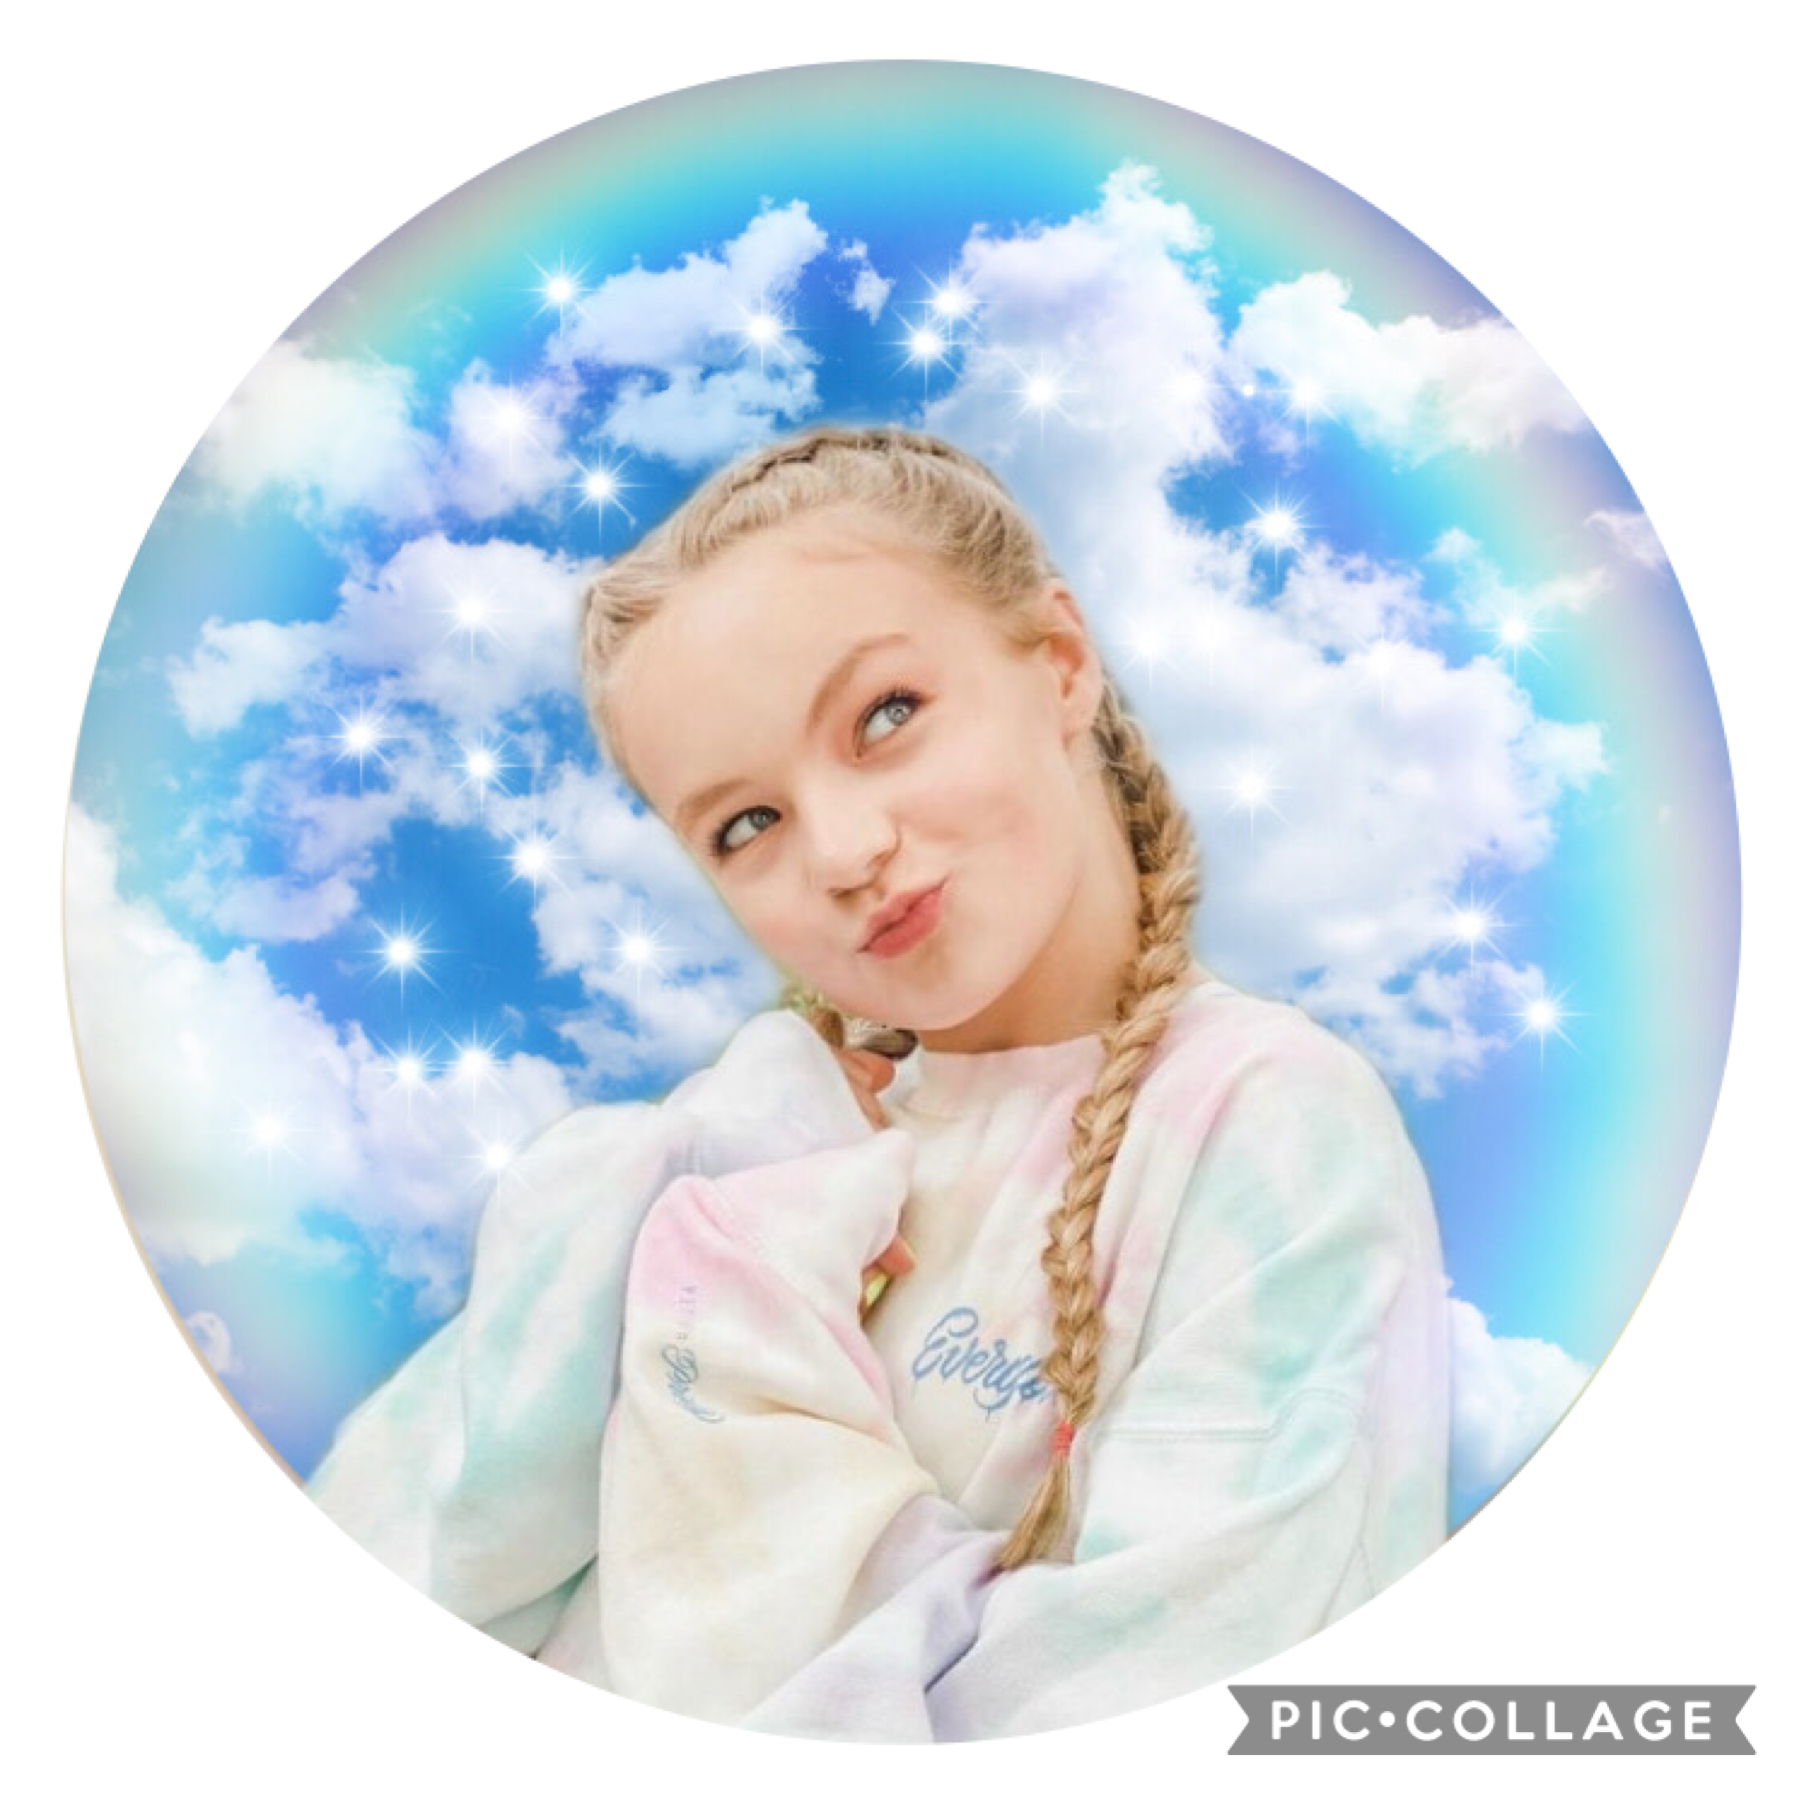 pressley pfp sorry it doesn't have the words i didn't know what font looked good